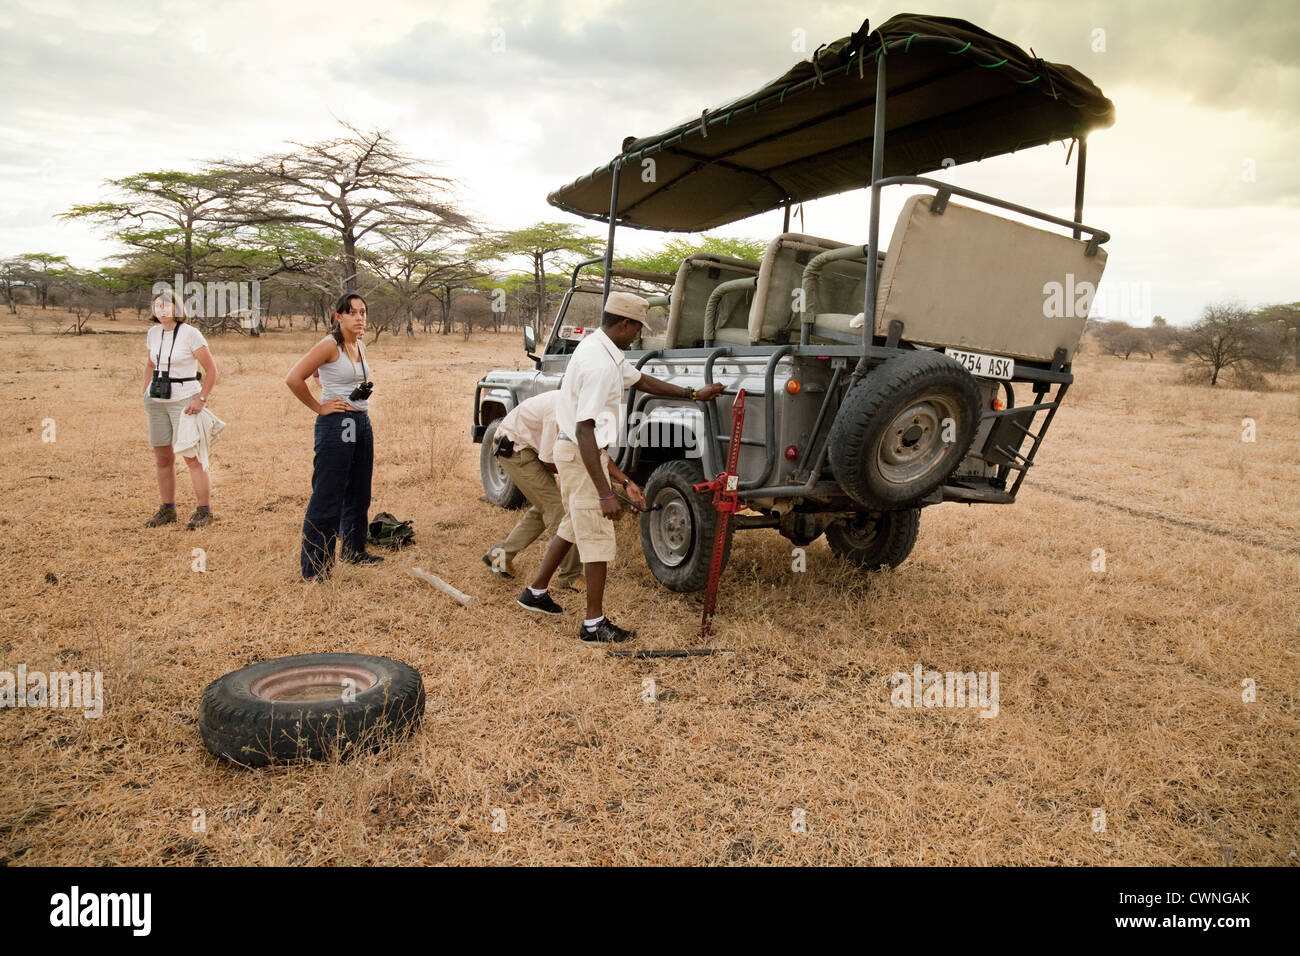 Tourists get out of the safari jeep while the guide and driver change a flat tyre, Selous Game reserve Tanzania - Stock Image